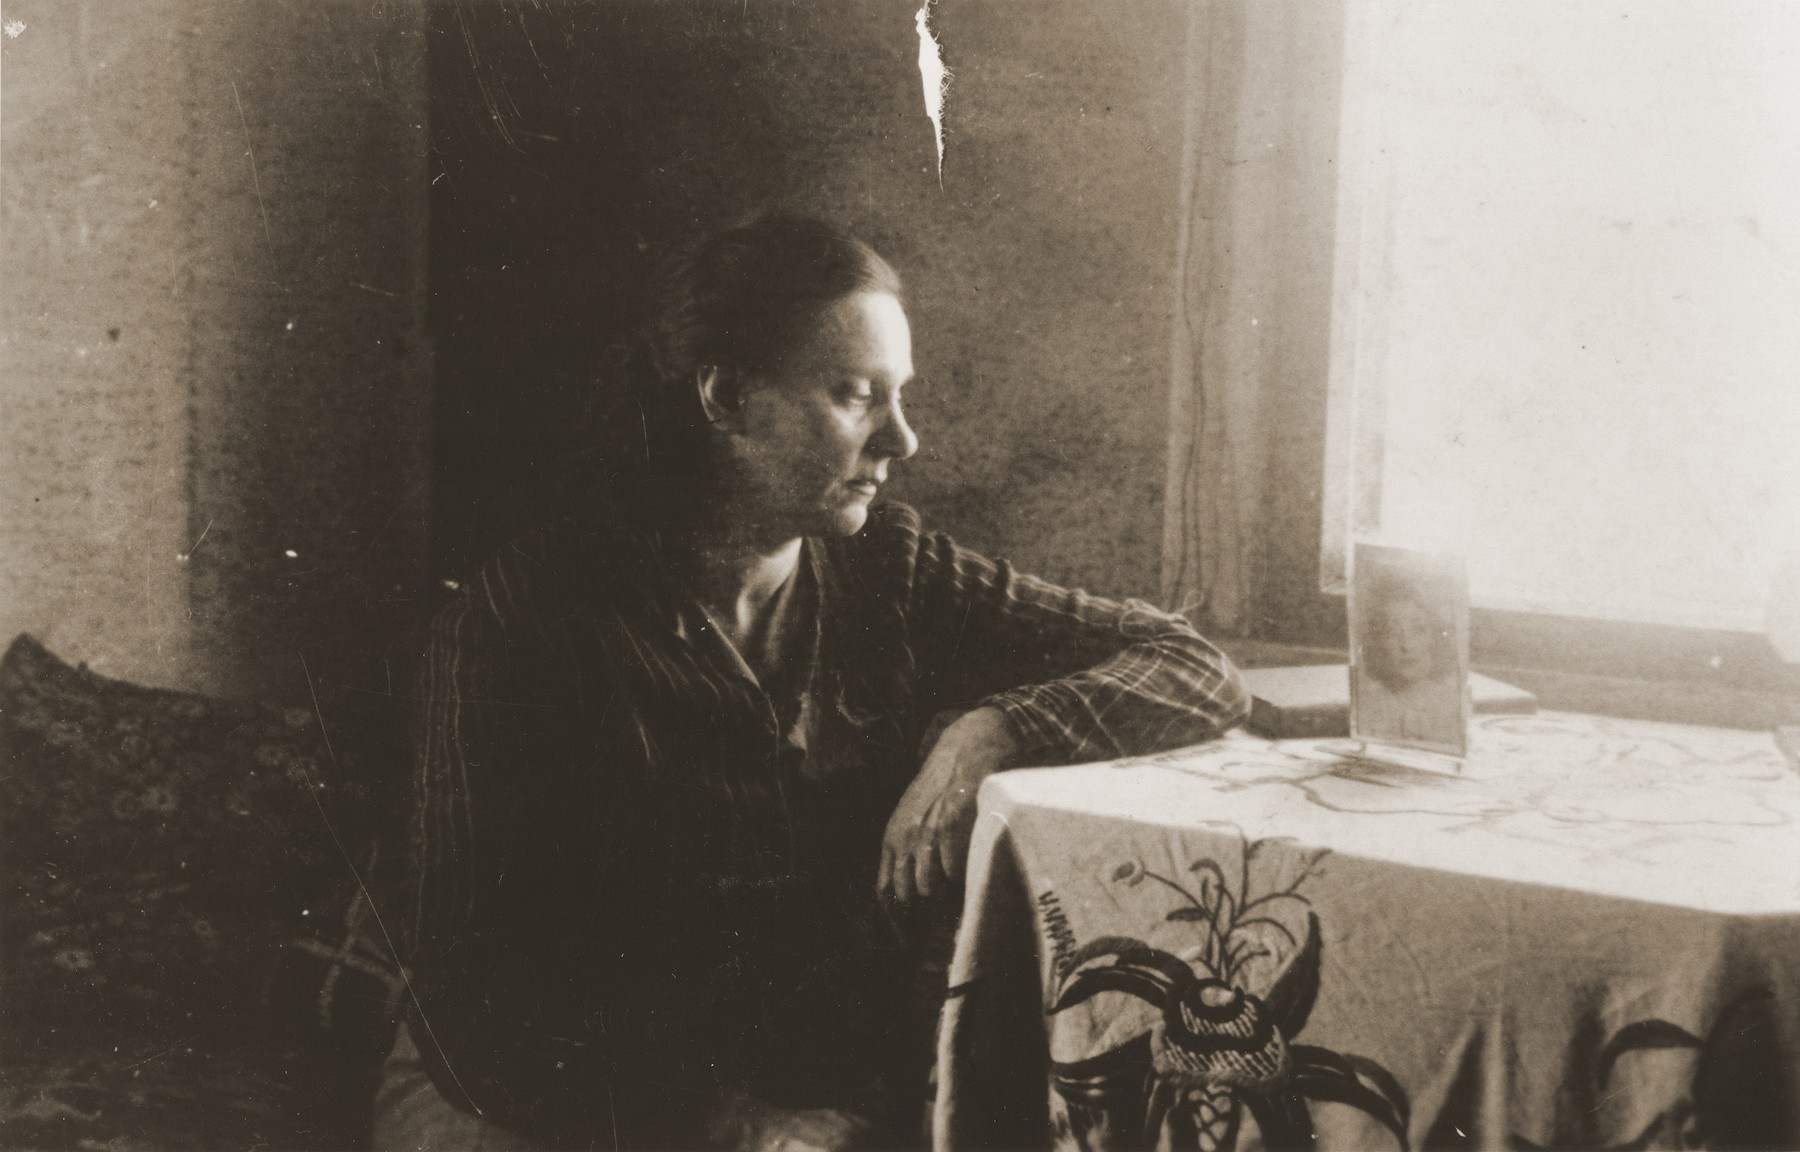 Zoia Bershtanski sits at a table in her room in the Kovno ghetto.  Zoia Bershtanski lived with her married sister, Meri Karnovski, in the ghetto.  Both died in a bunker when the Germans set the ghetto on fire in July 1944.  The photographer, David Ratner, was a friend and a member of the Communist underground.